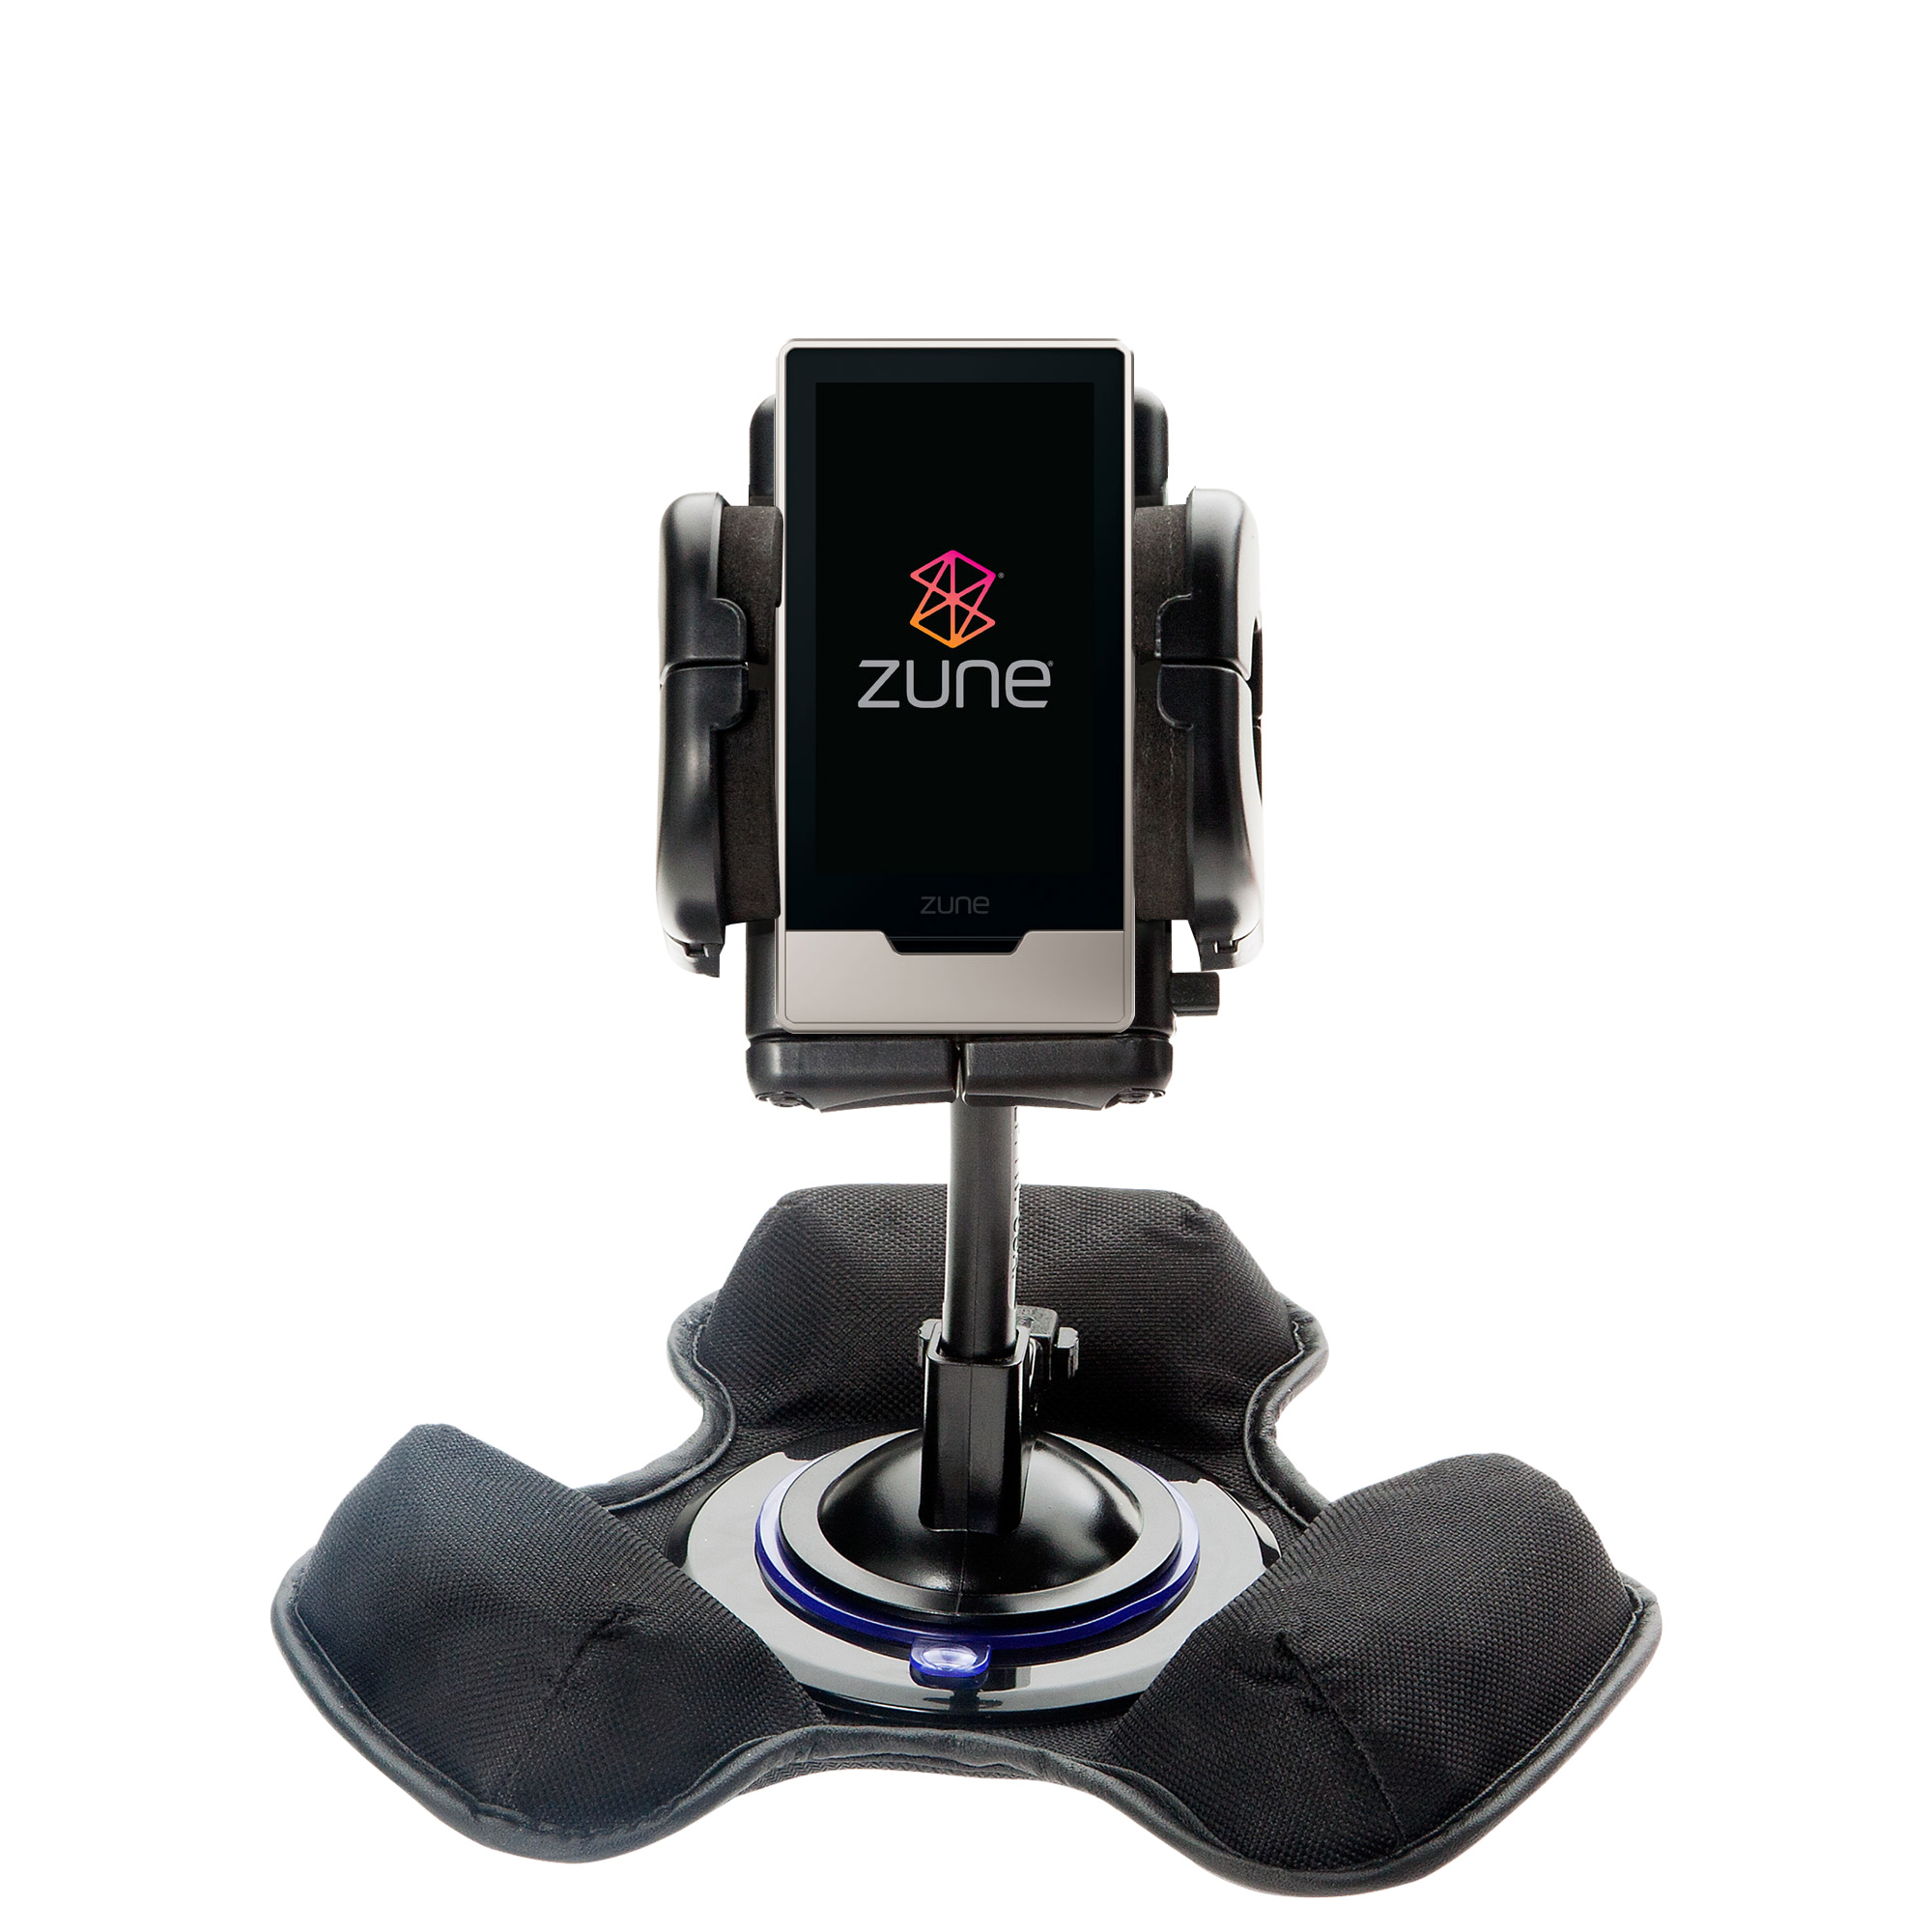 Dash and Windshield Holder compatible with the Microsoft Zune HD